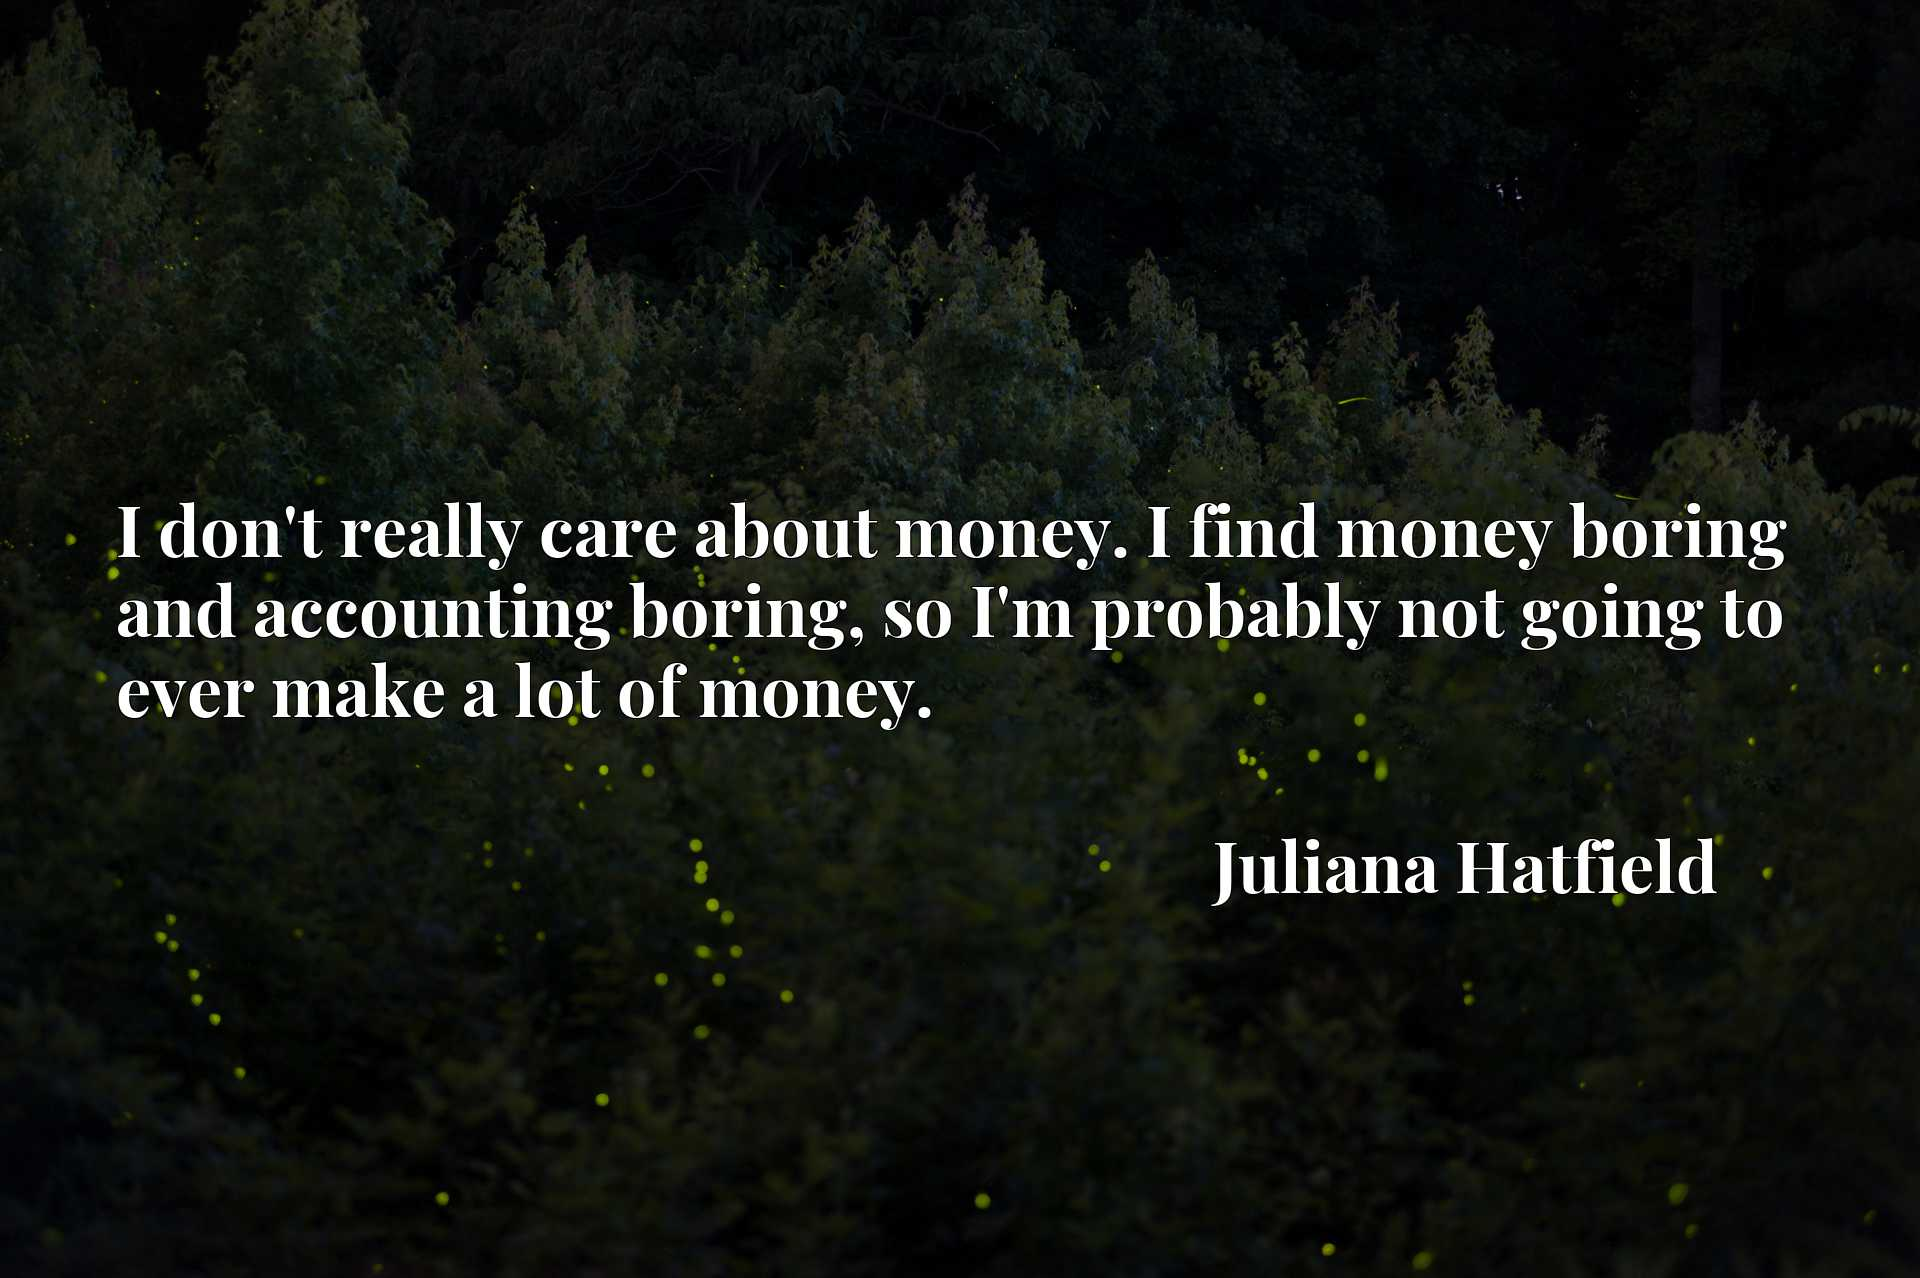 I don't really care about money. I find money boring and accounting boring, so I'm probably not going to ever make a lot of money.